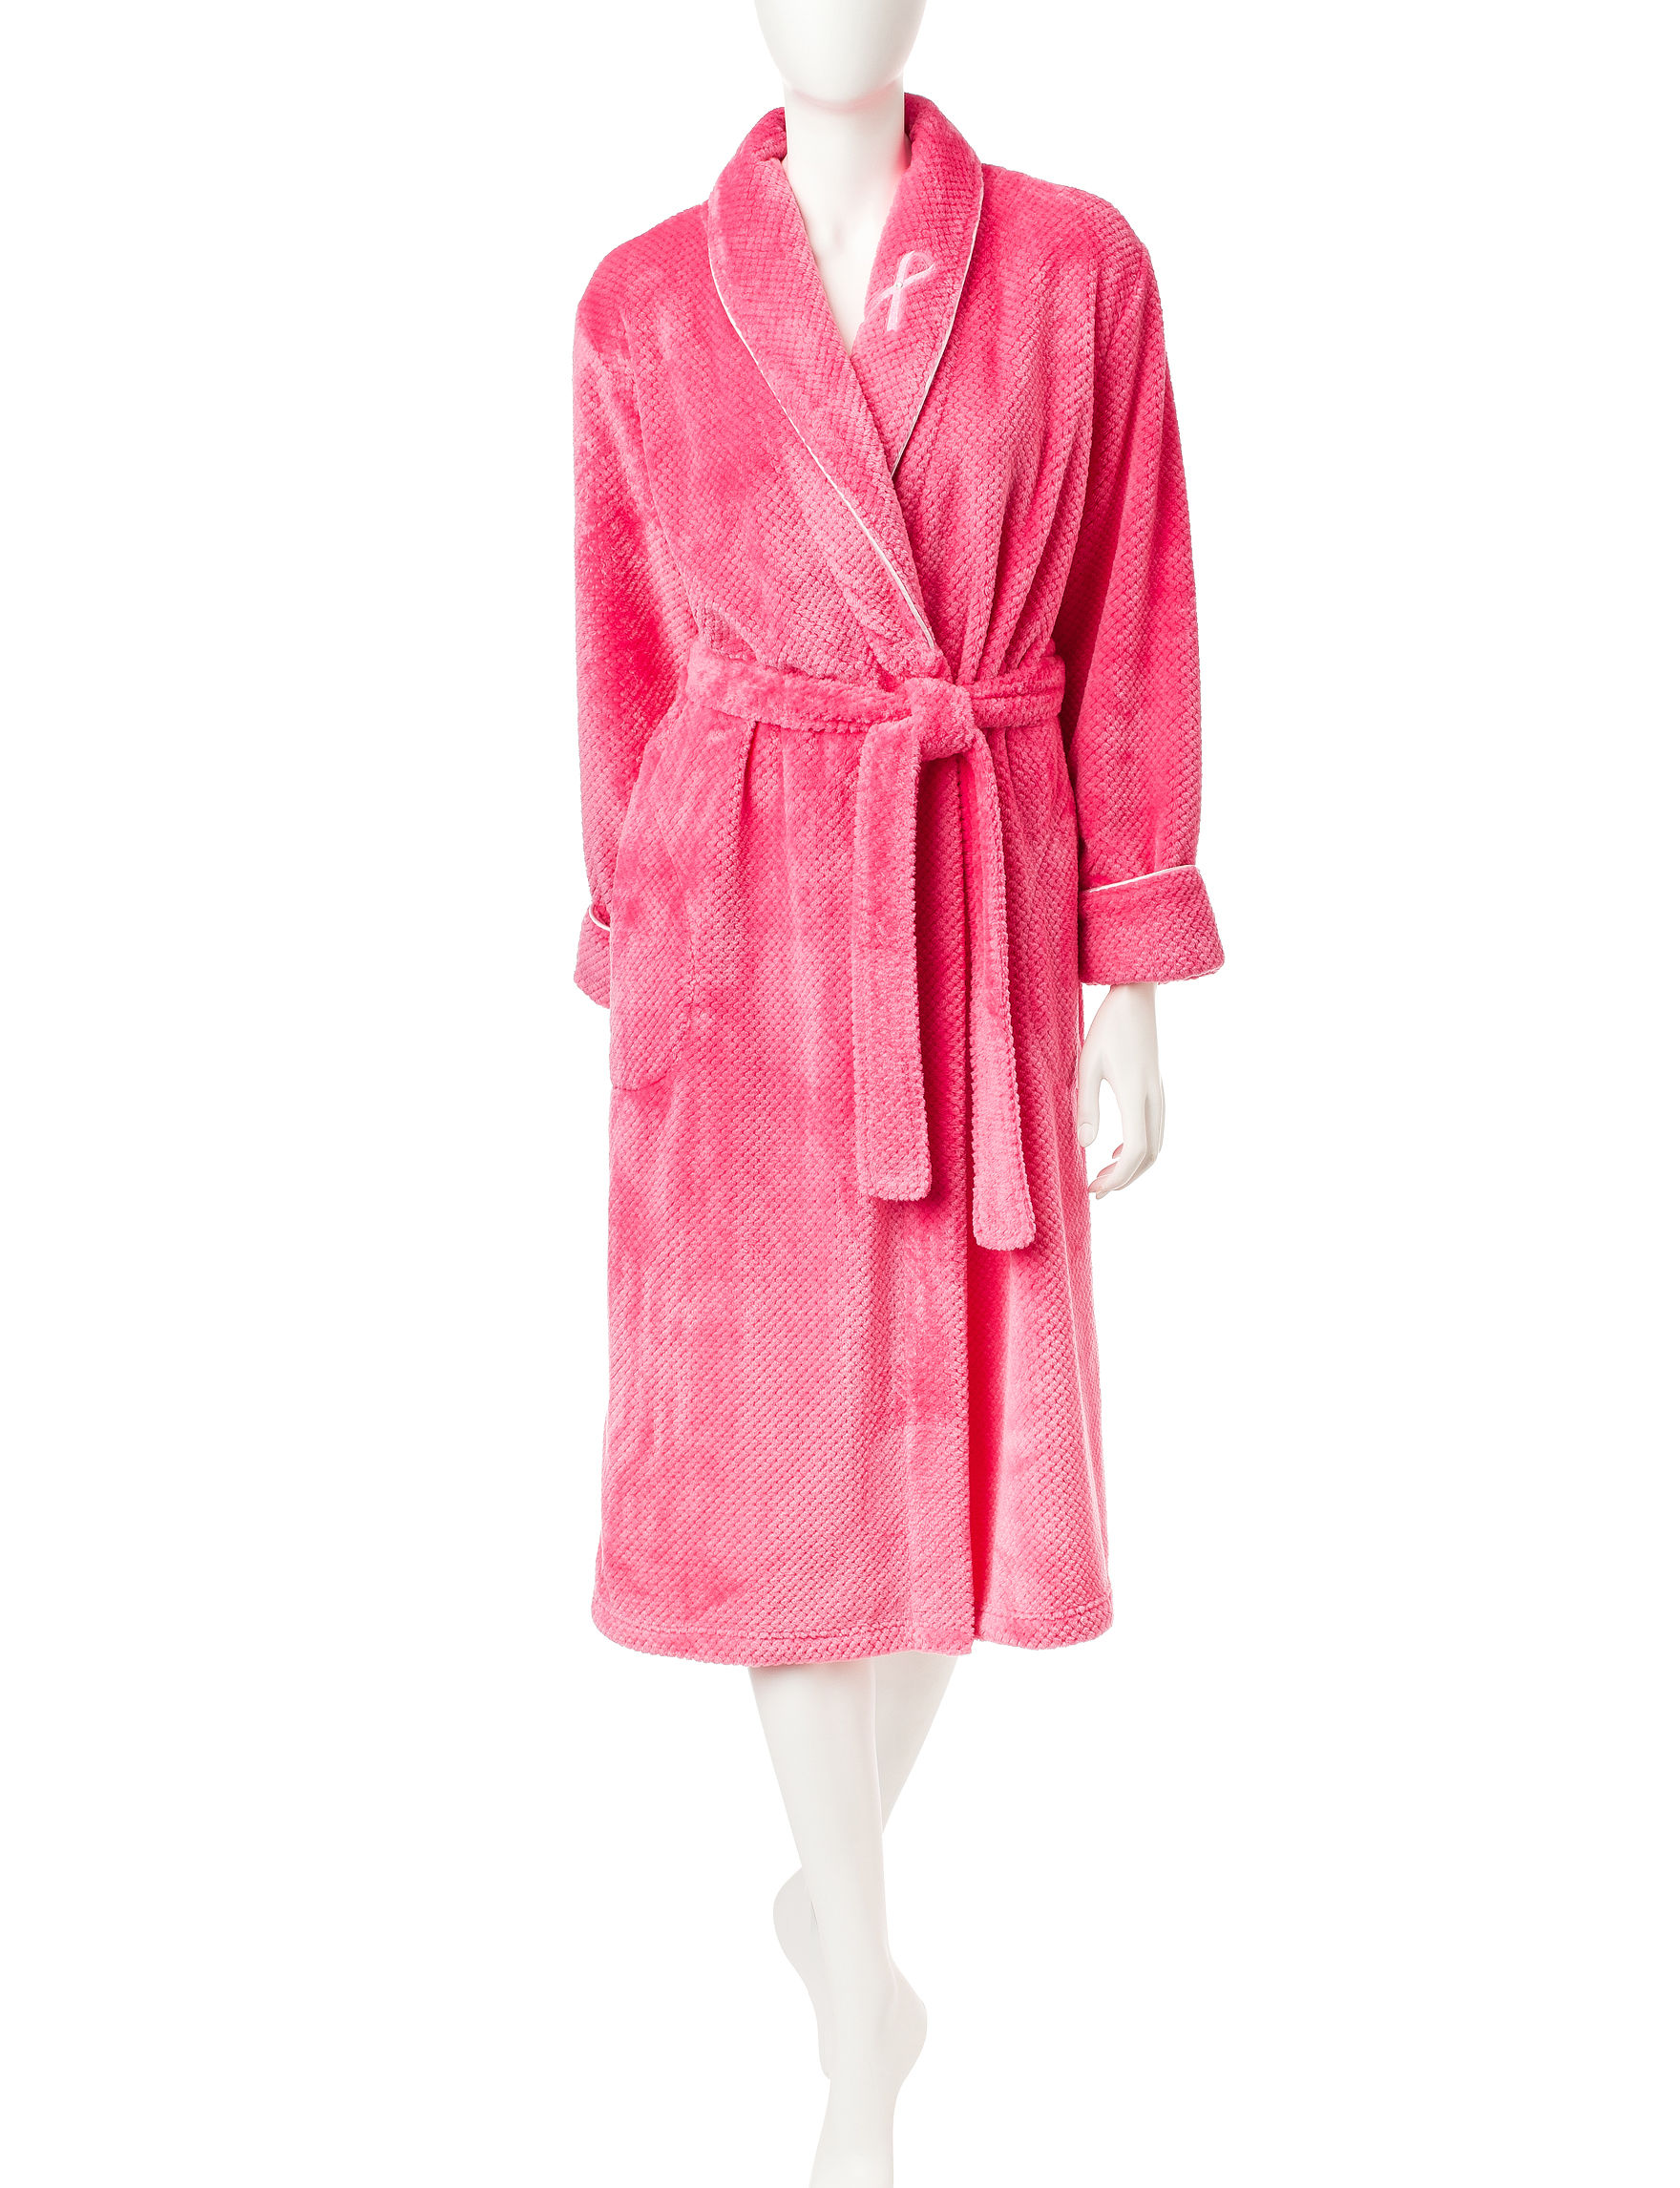 Jasmine Rose Bright Pink Robes, Wraps & Dusters